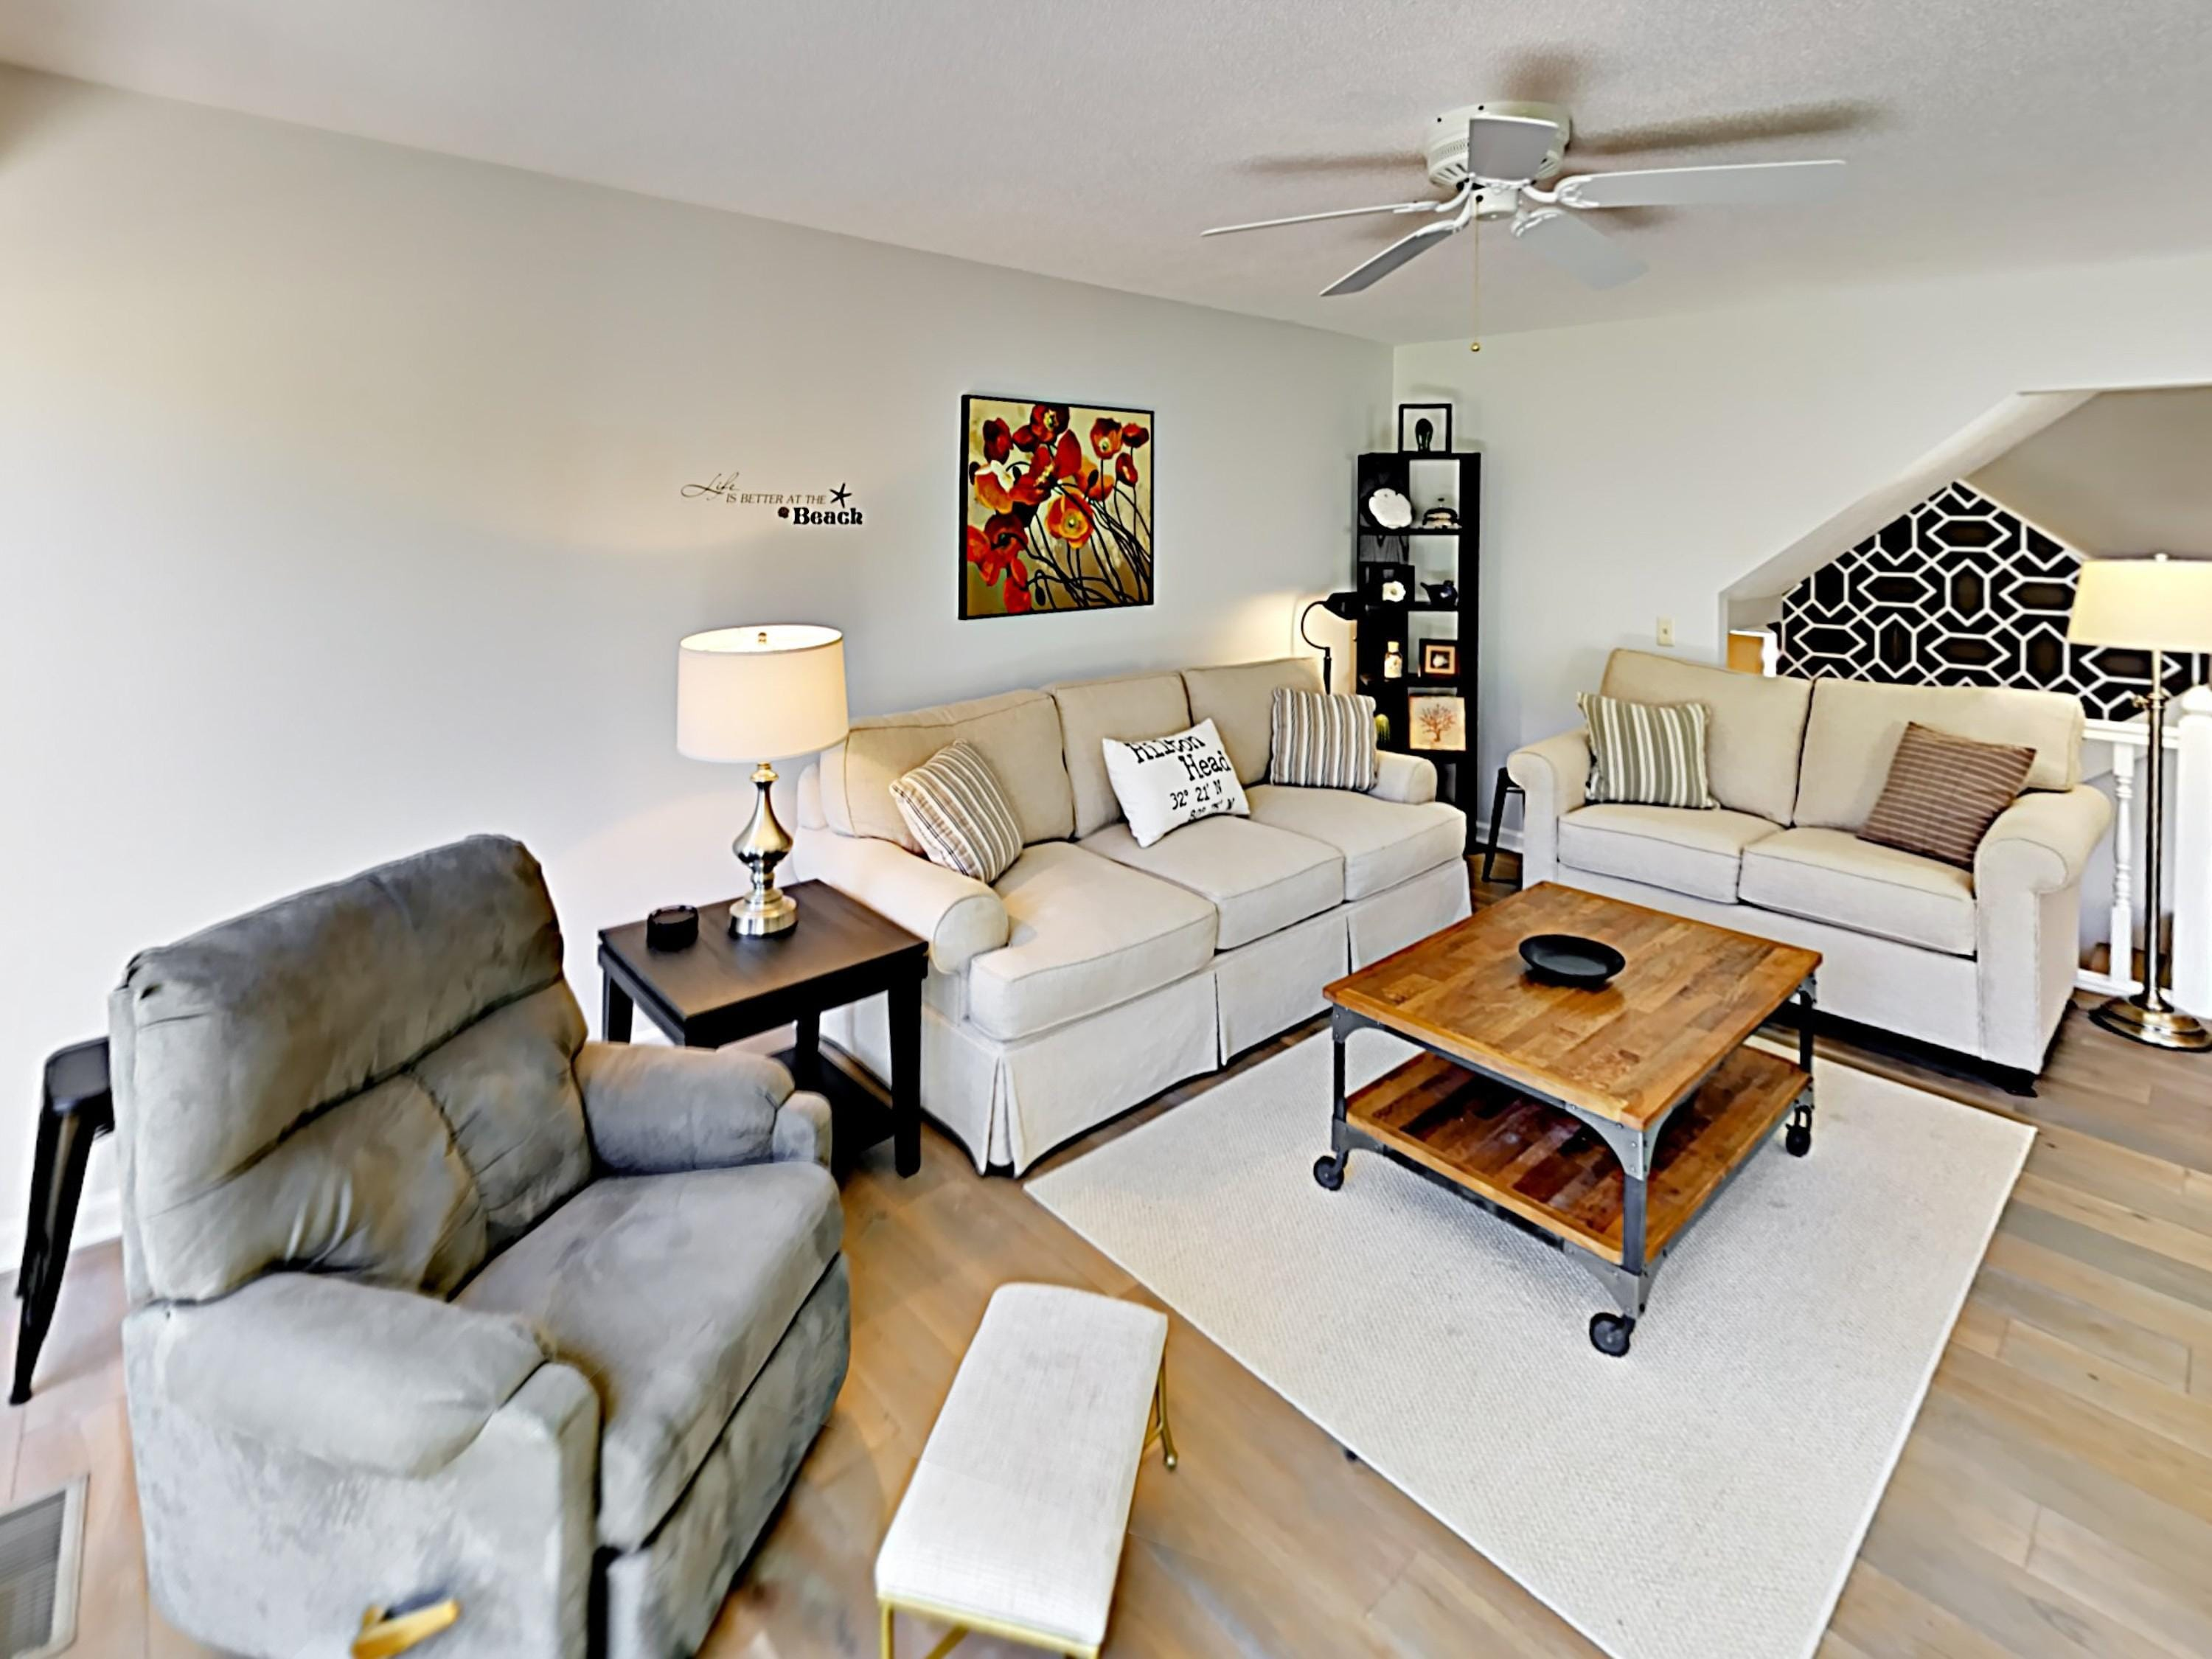 Welcome to Hilton Head Island! This townhome is professionally managed by TurnKey Vacation Rentals.